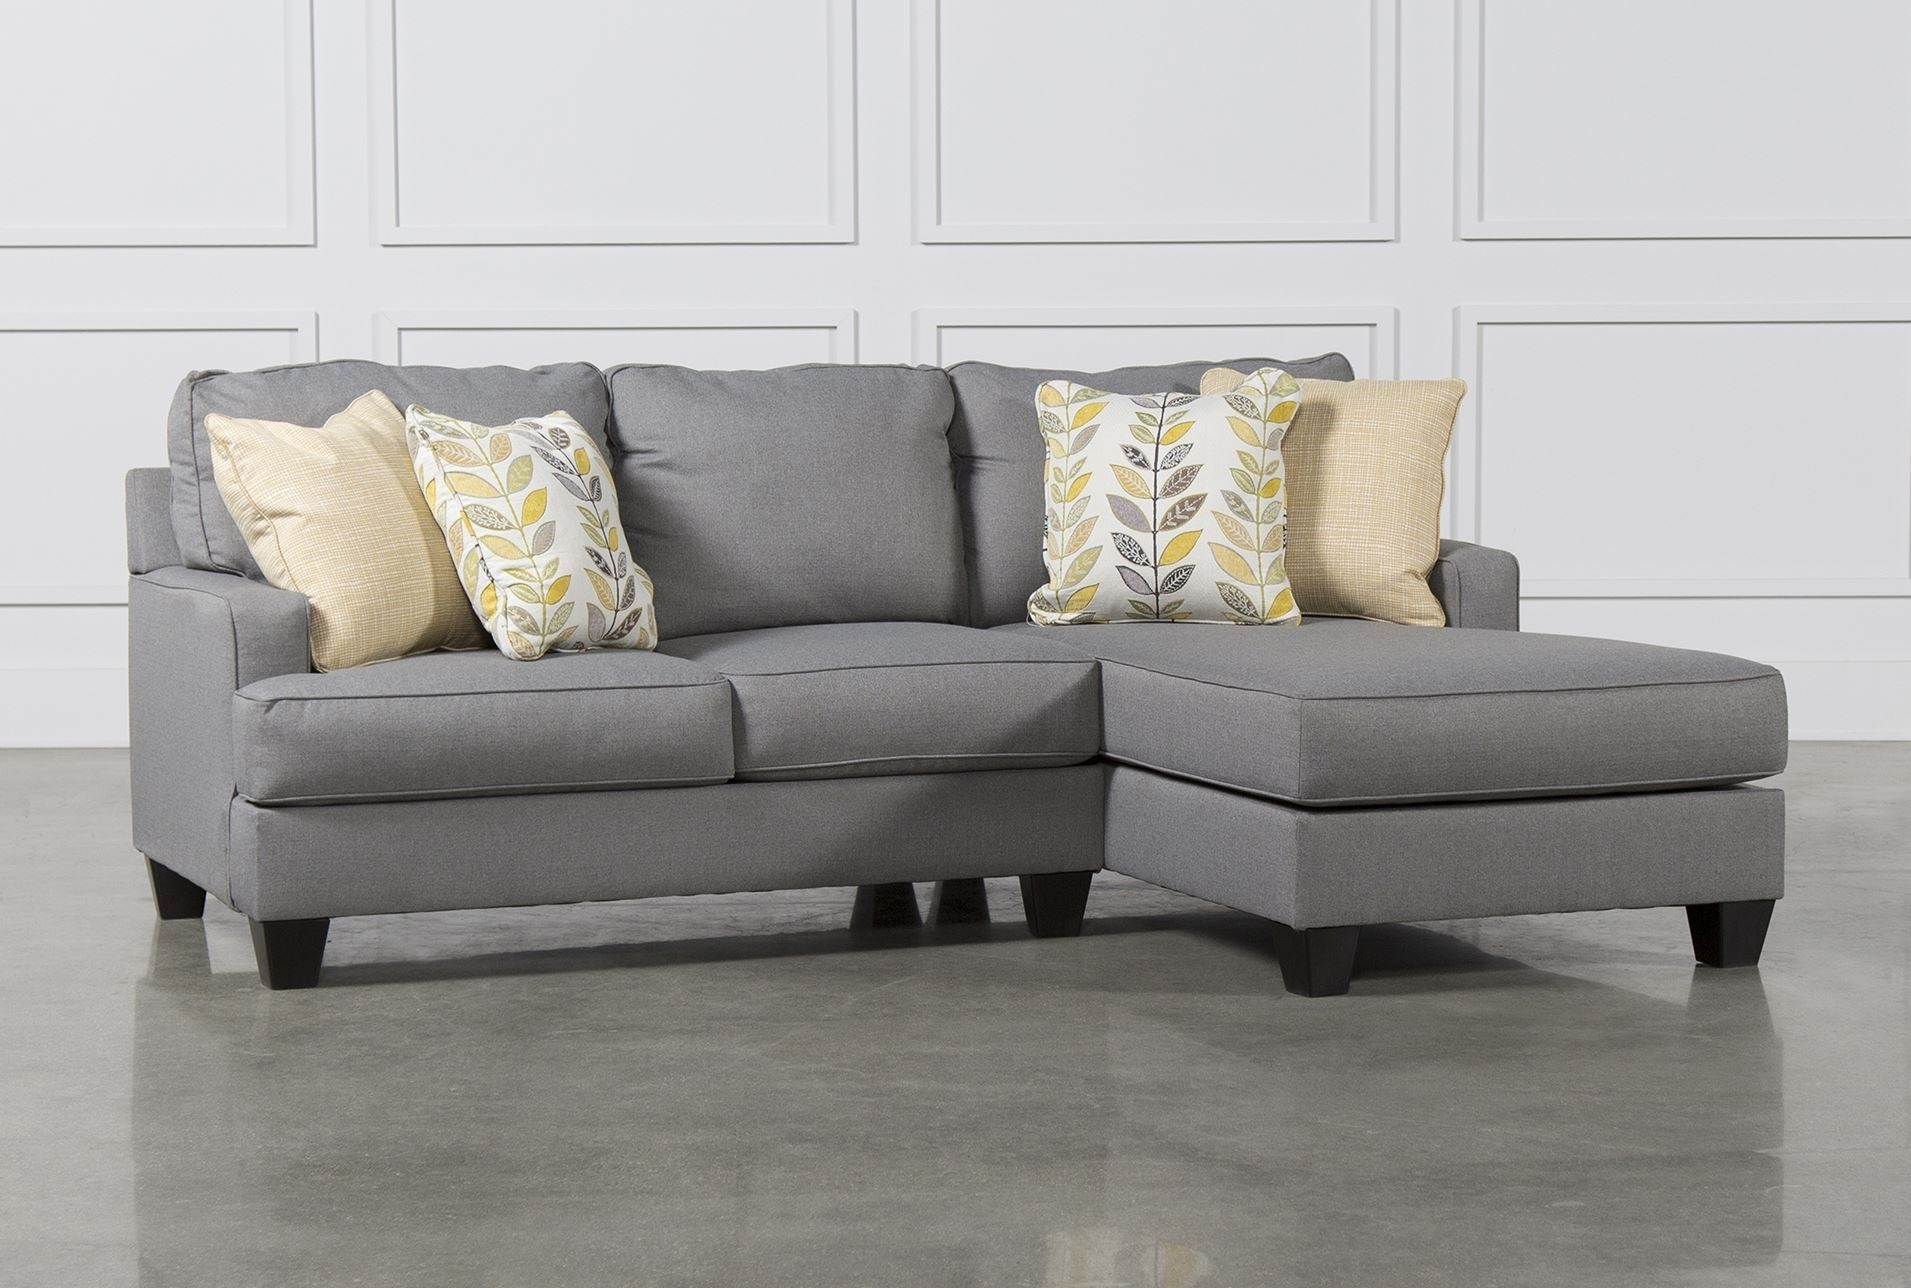 Chamberly 2 Piece Sectional W/raf Chaise - Signature | Mi Casa intended for Murfreesboro Tn Sectional Sofas (Image 7 of 10)